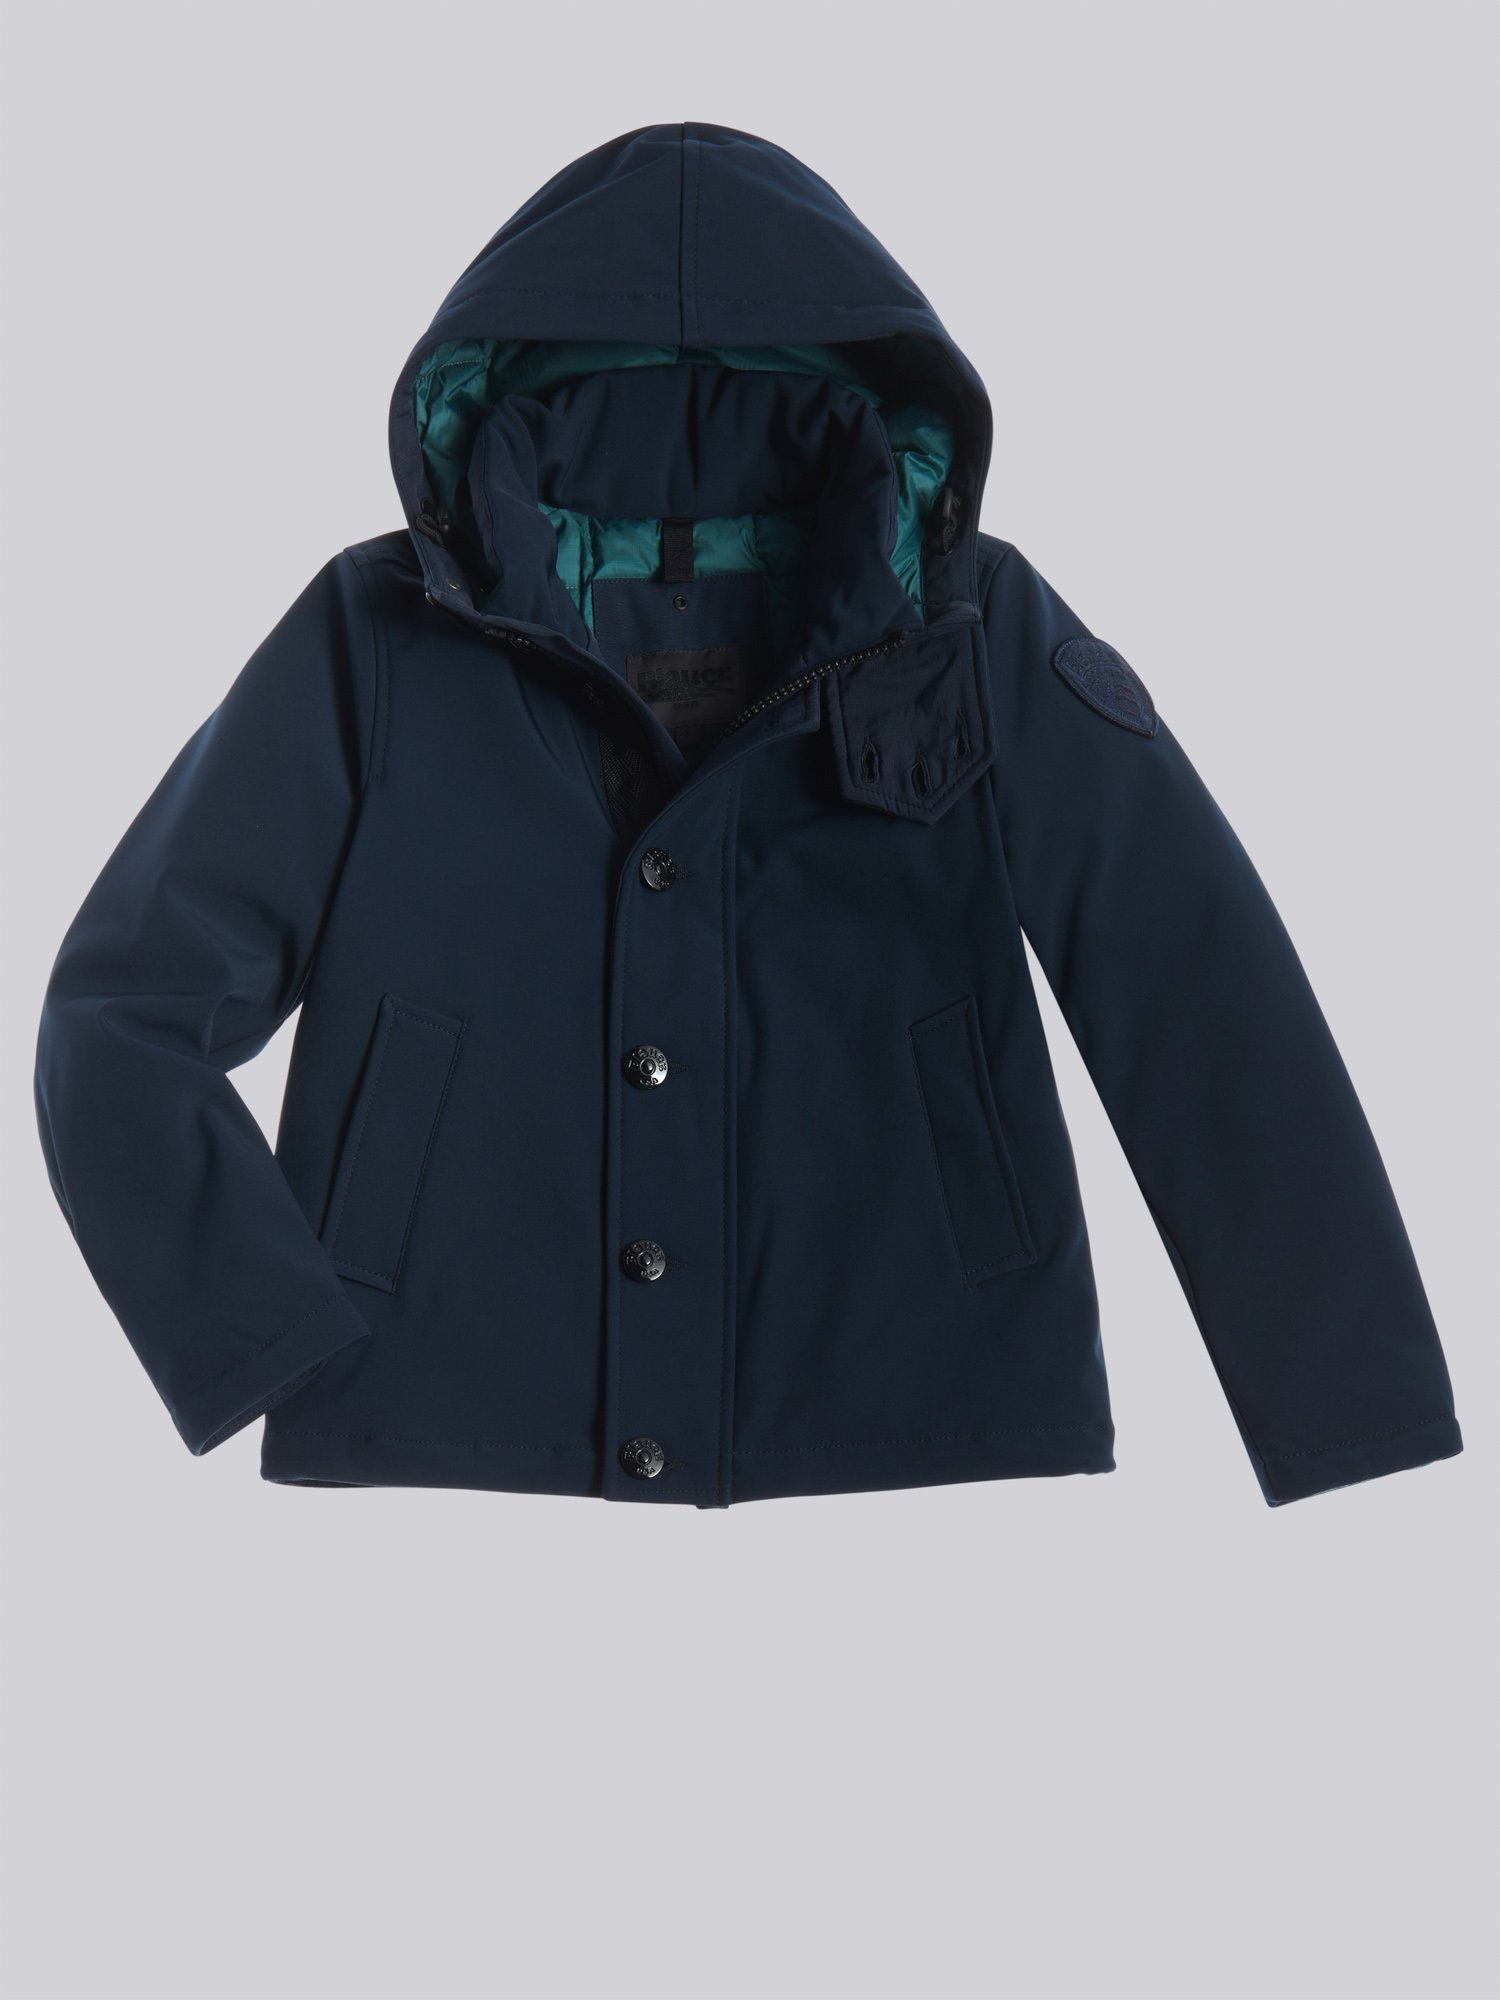 CURTIS NEOPRENE JACKET - Blauer